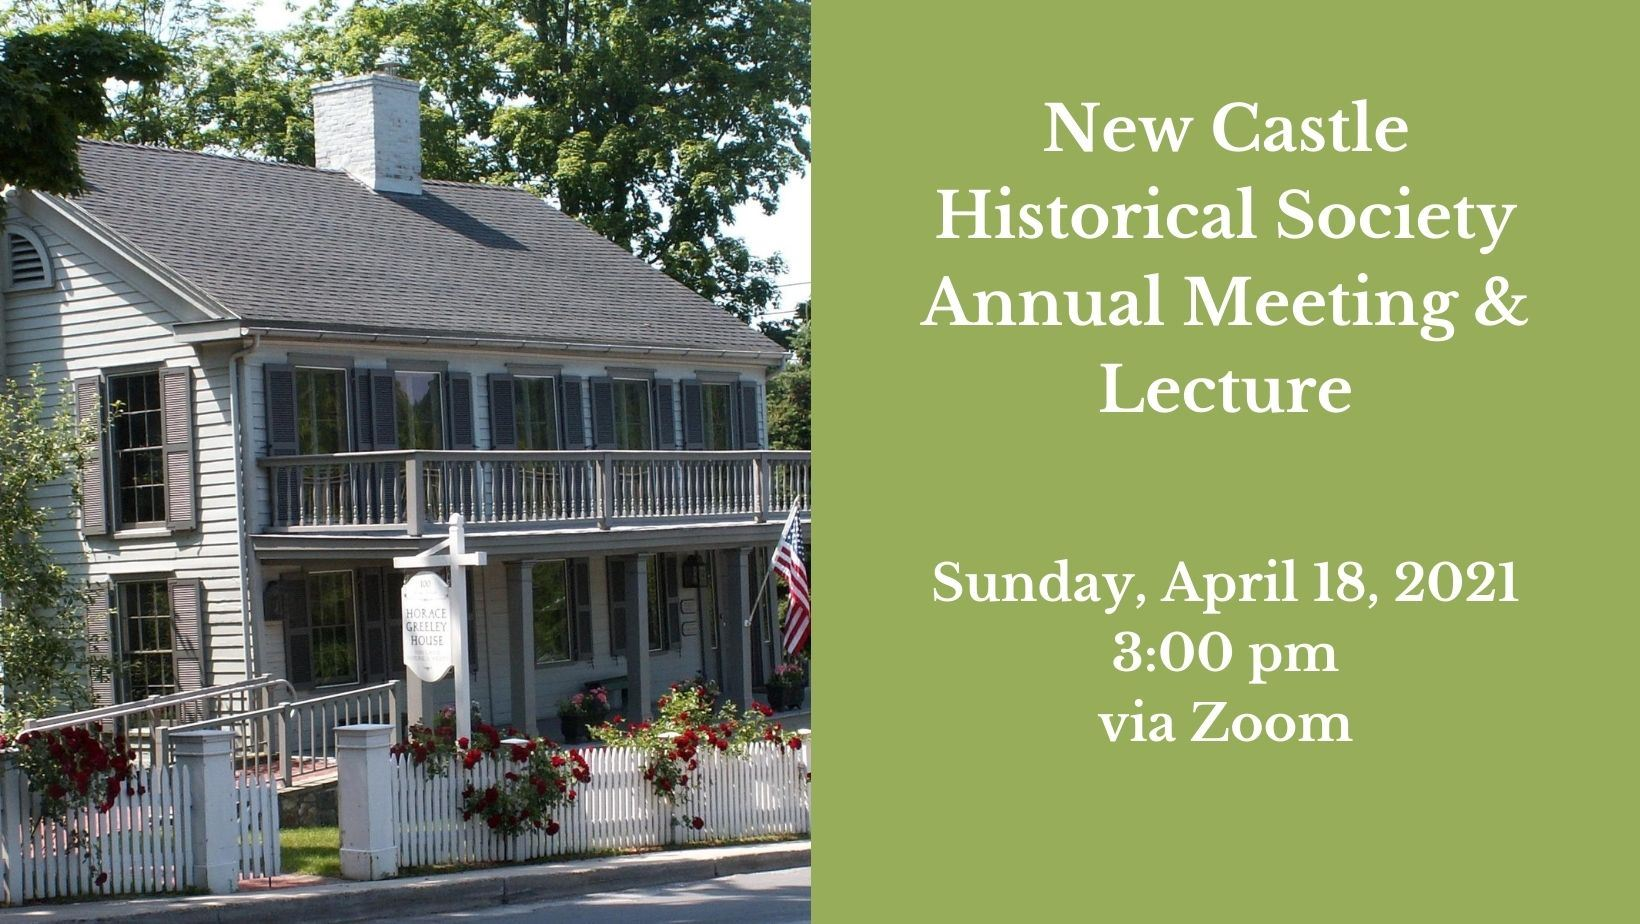 Historical Society Annual Meeting 2021